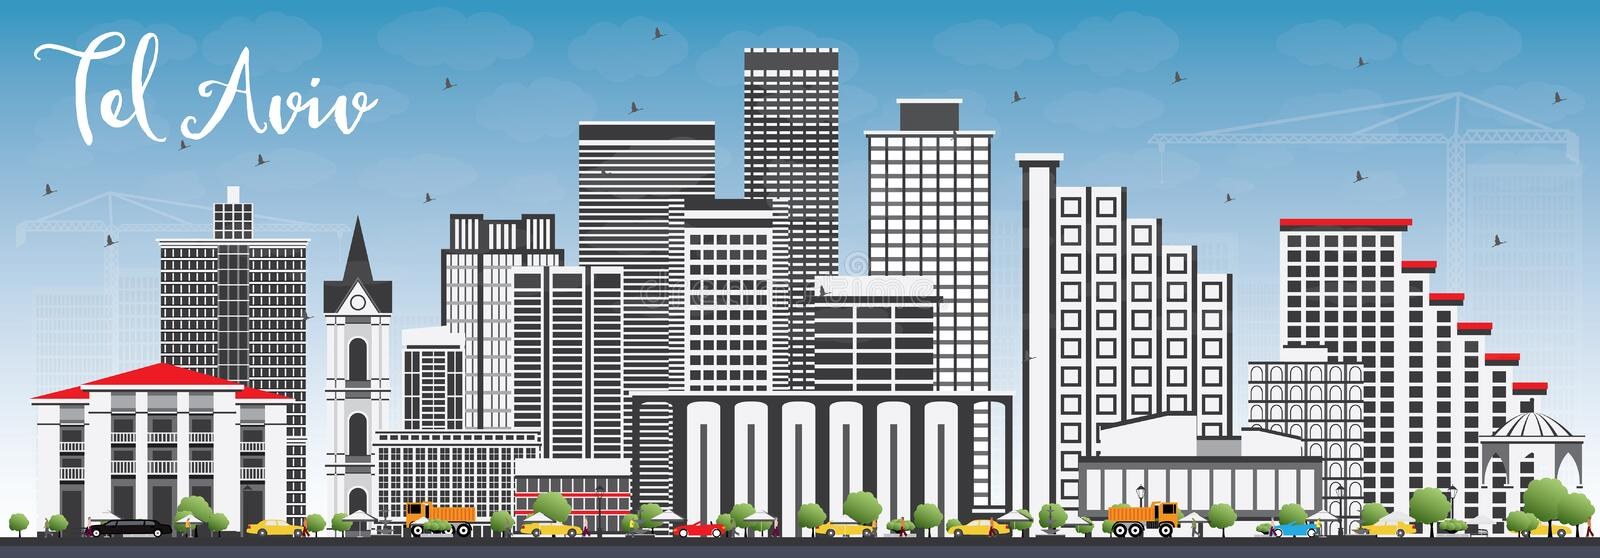 Tel Aviv Skyline with Gray Buildings and Blue Sky. Vector Illustration. Business Travel and Tourism Concept with Modern Architecture. Image for Presentation stock illustration